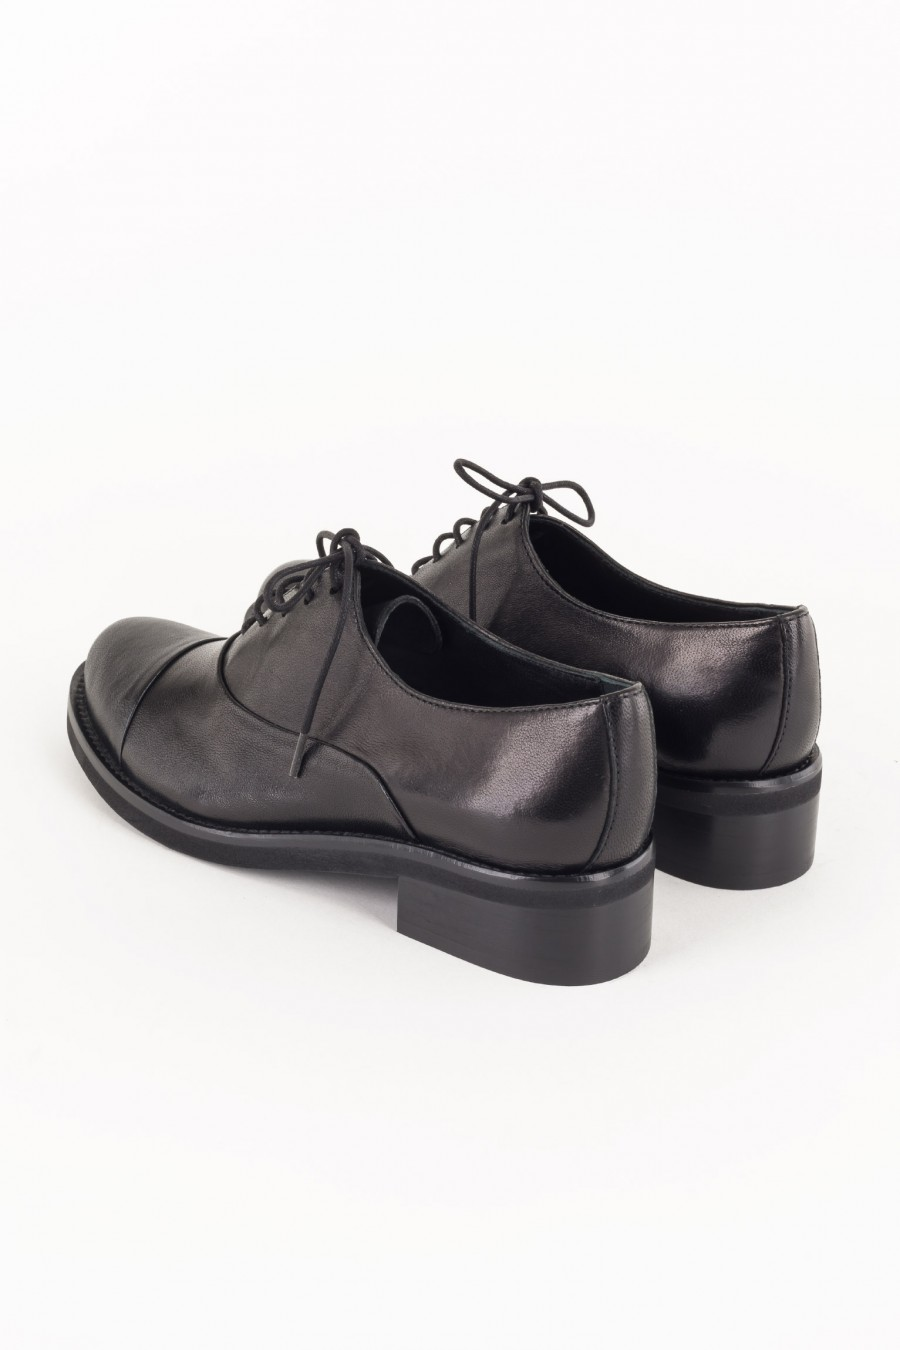 Lace-up black shoes